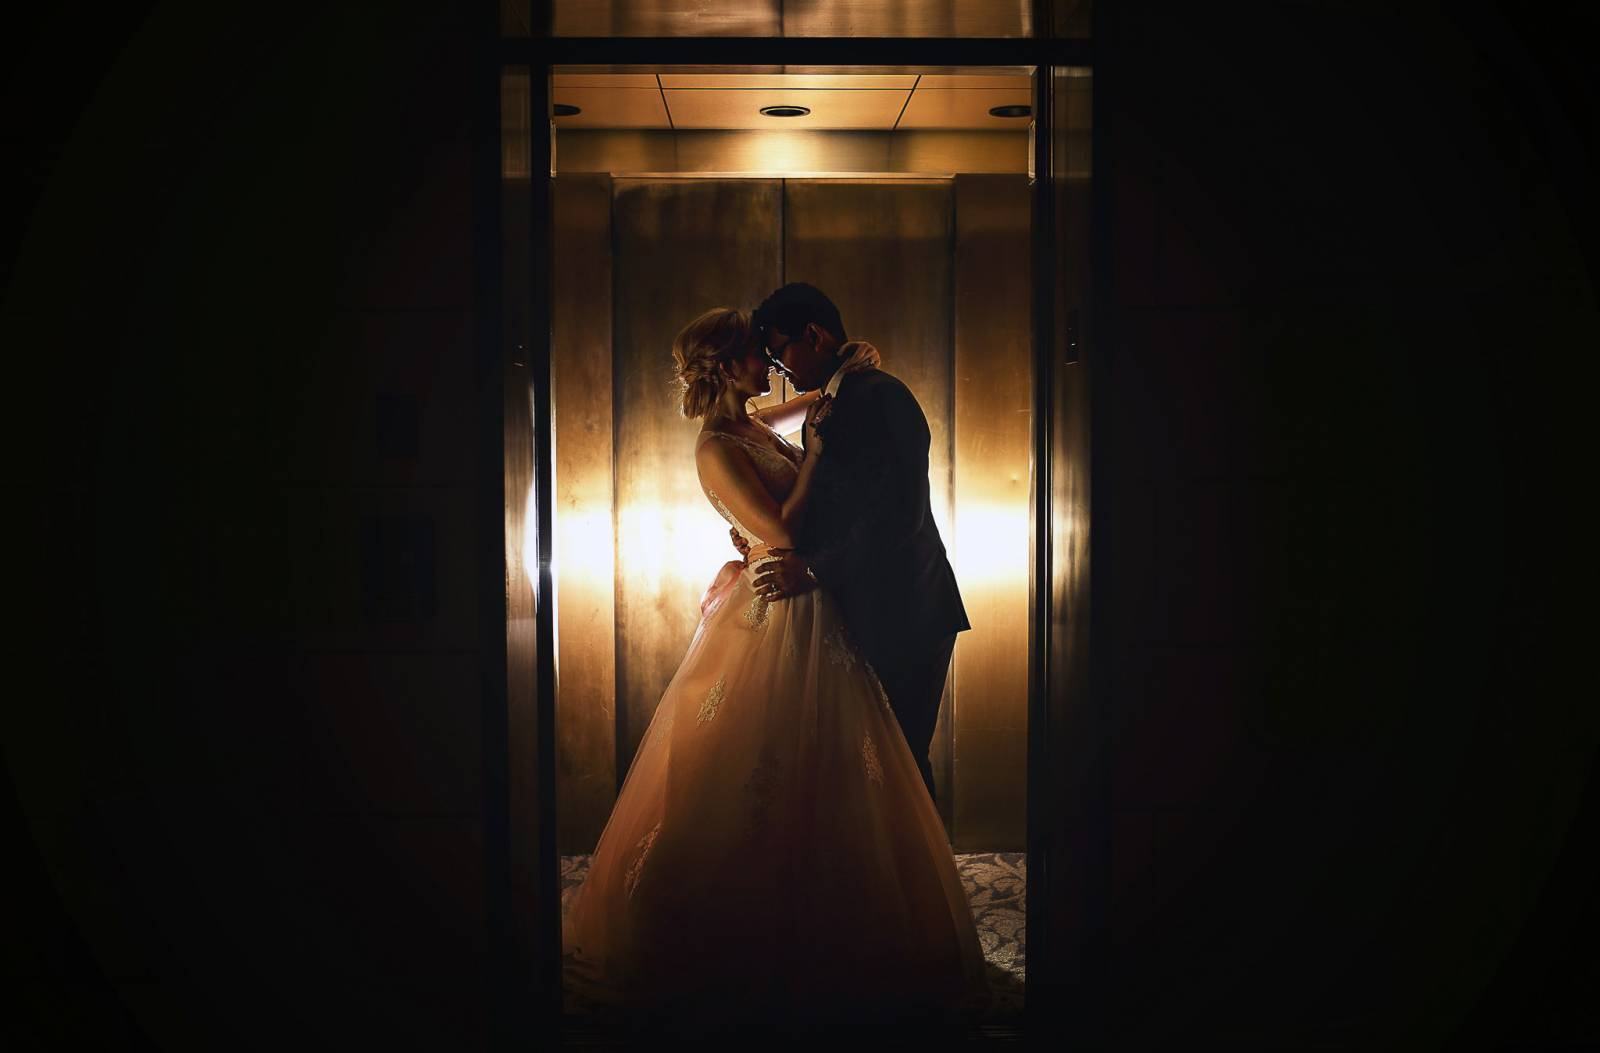 artistic shot of bride and groom in the hotel elevator captured by Cat Lemus Photography & Cinema